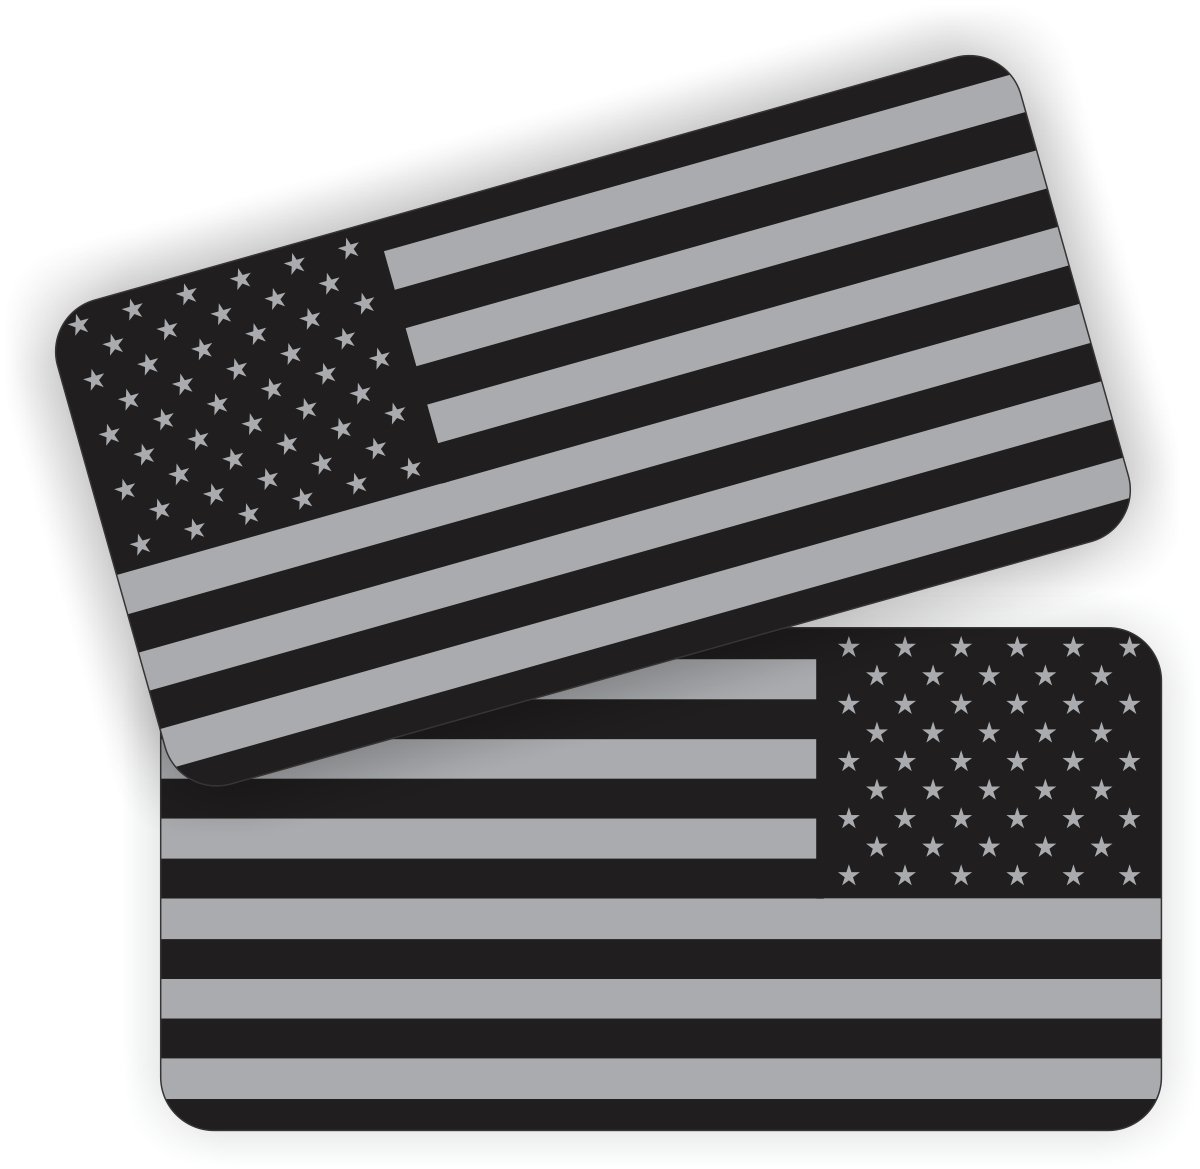 Stealth American Flag Helmet / Hard Hat Sticker / Decal / Label Tool Lunch Box Patriotic Old Glory Black Ops